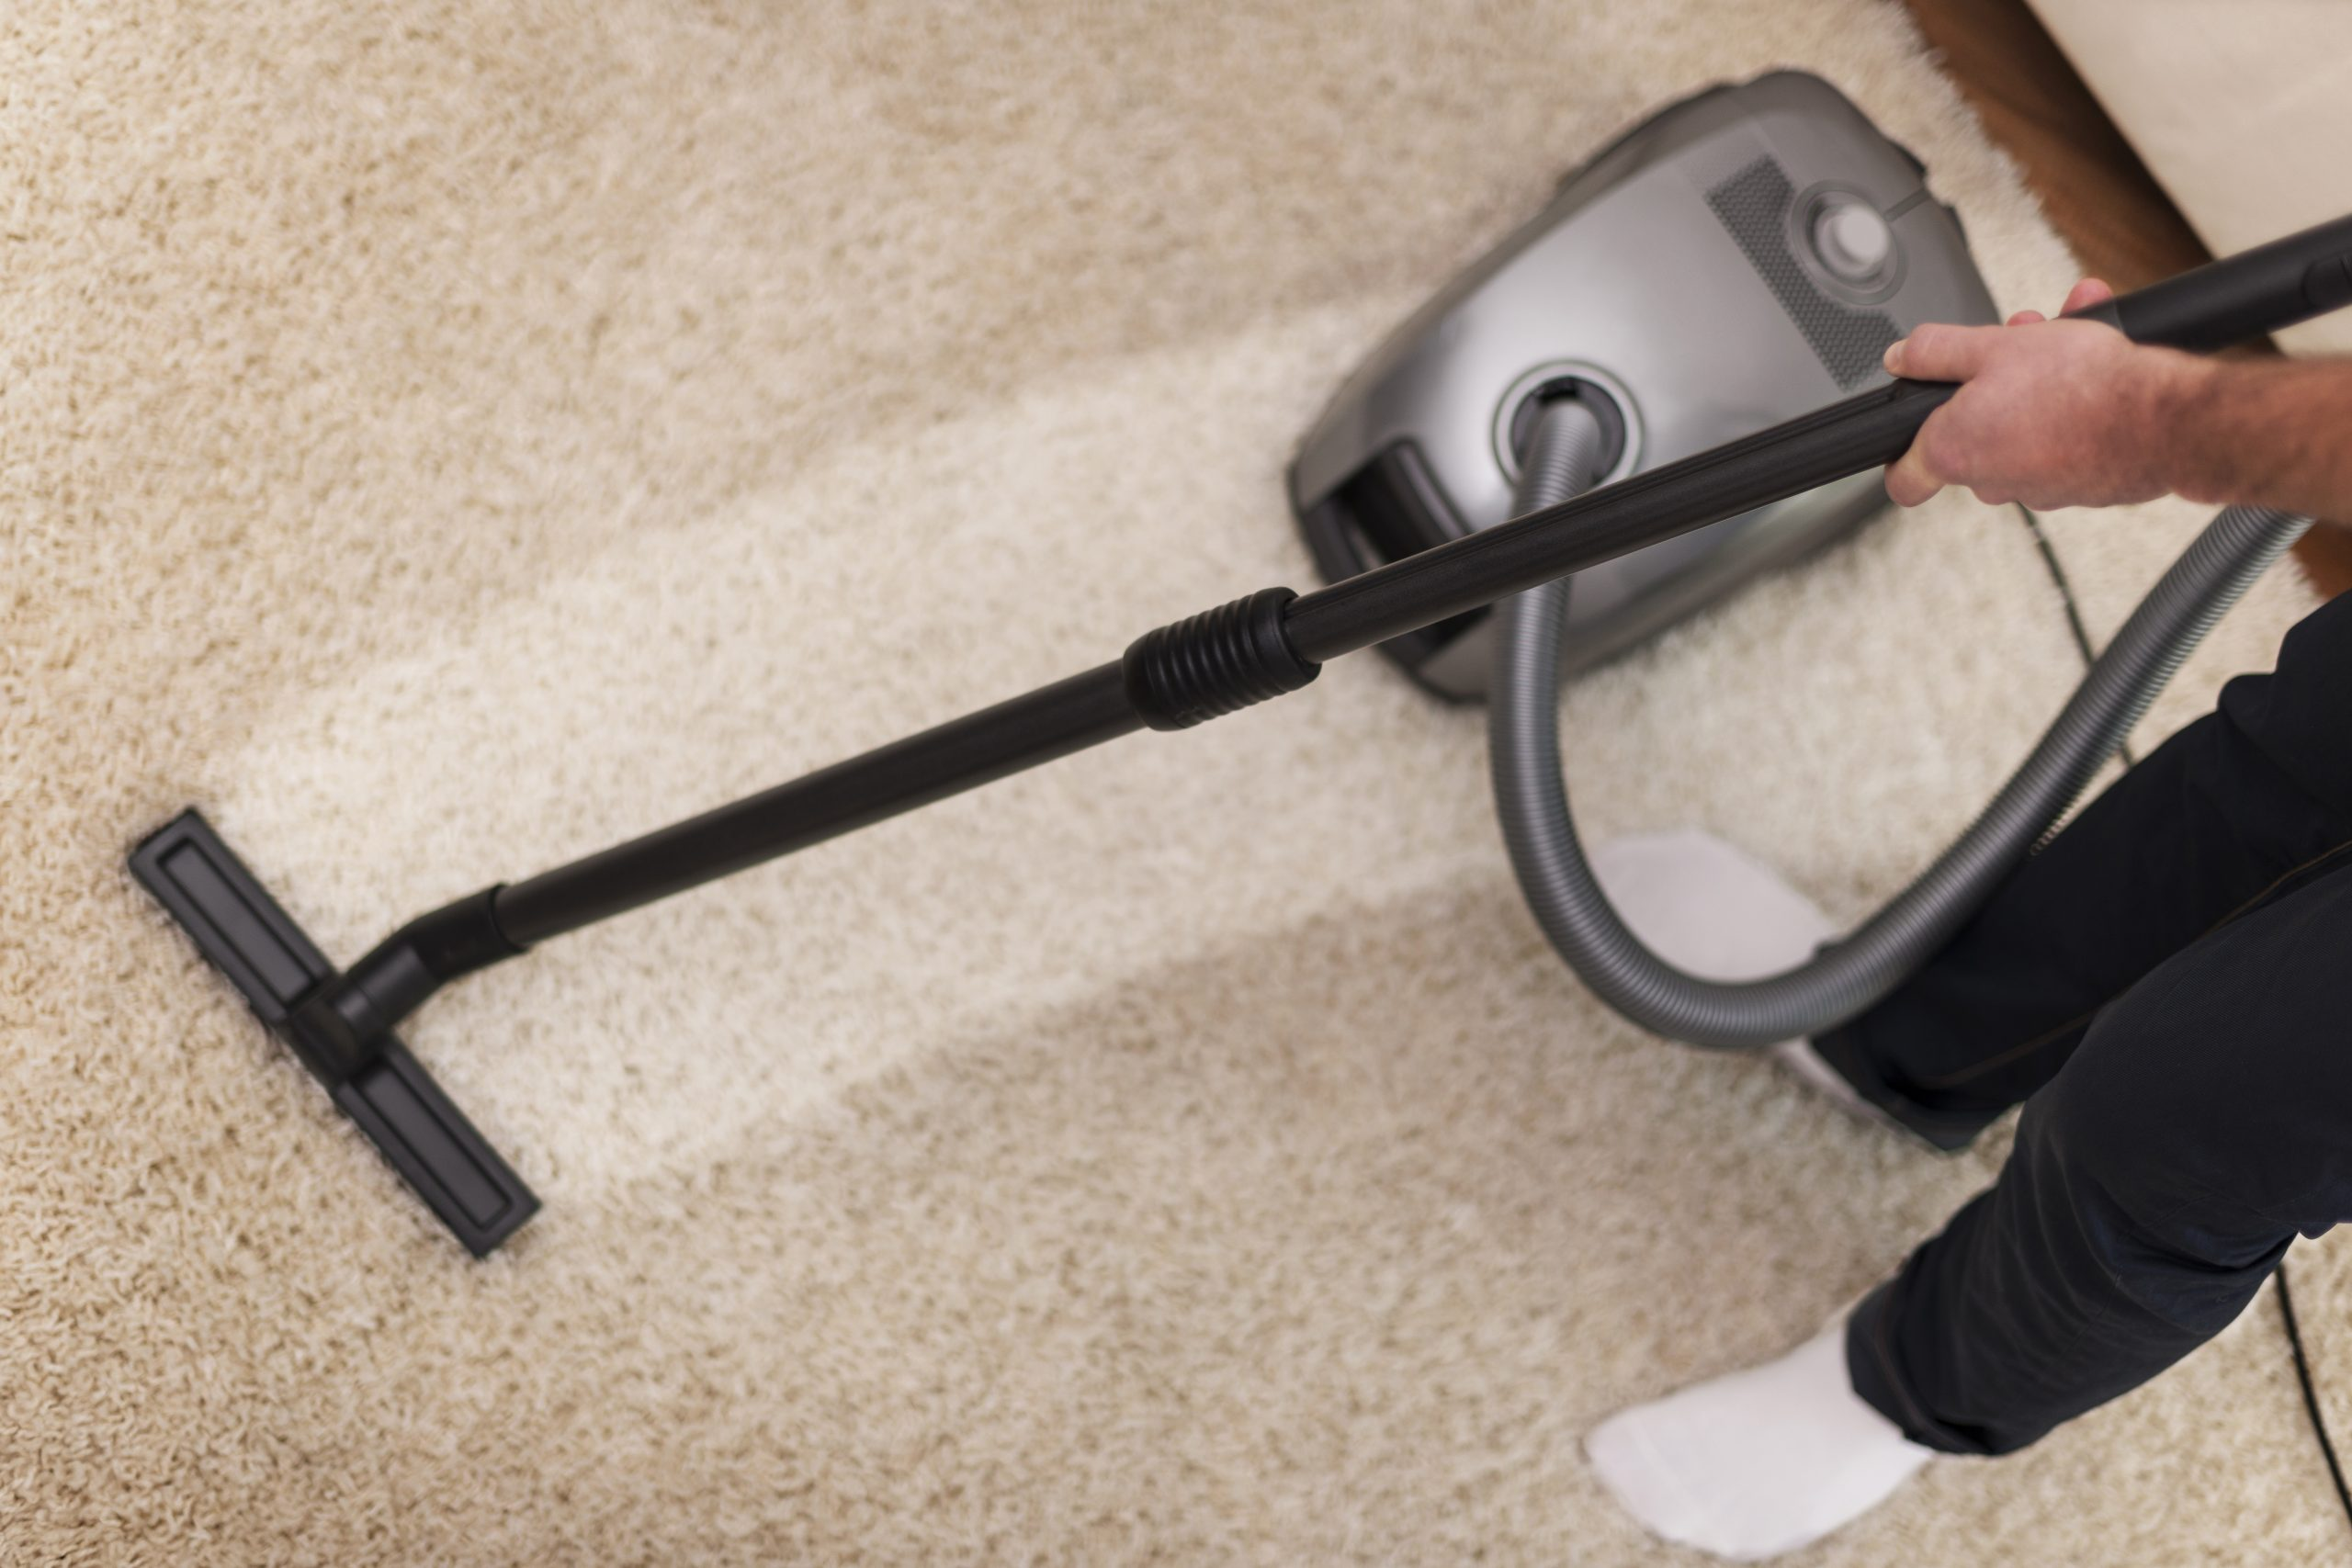 Cleaning furnishings saves money. January Sale.